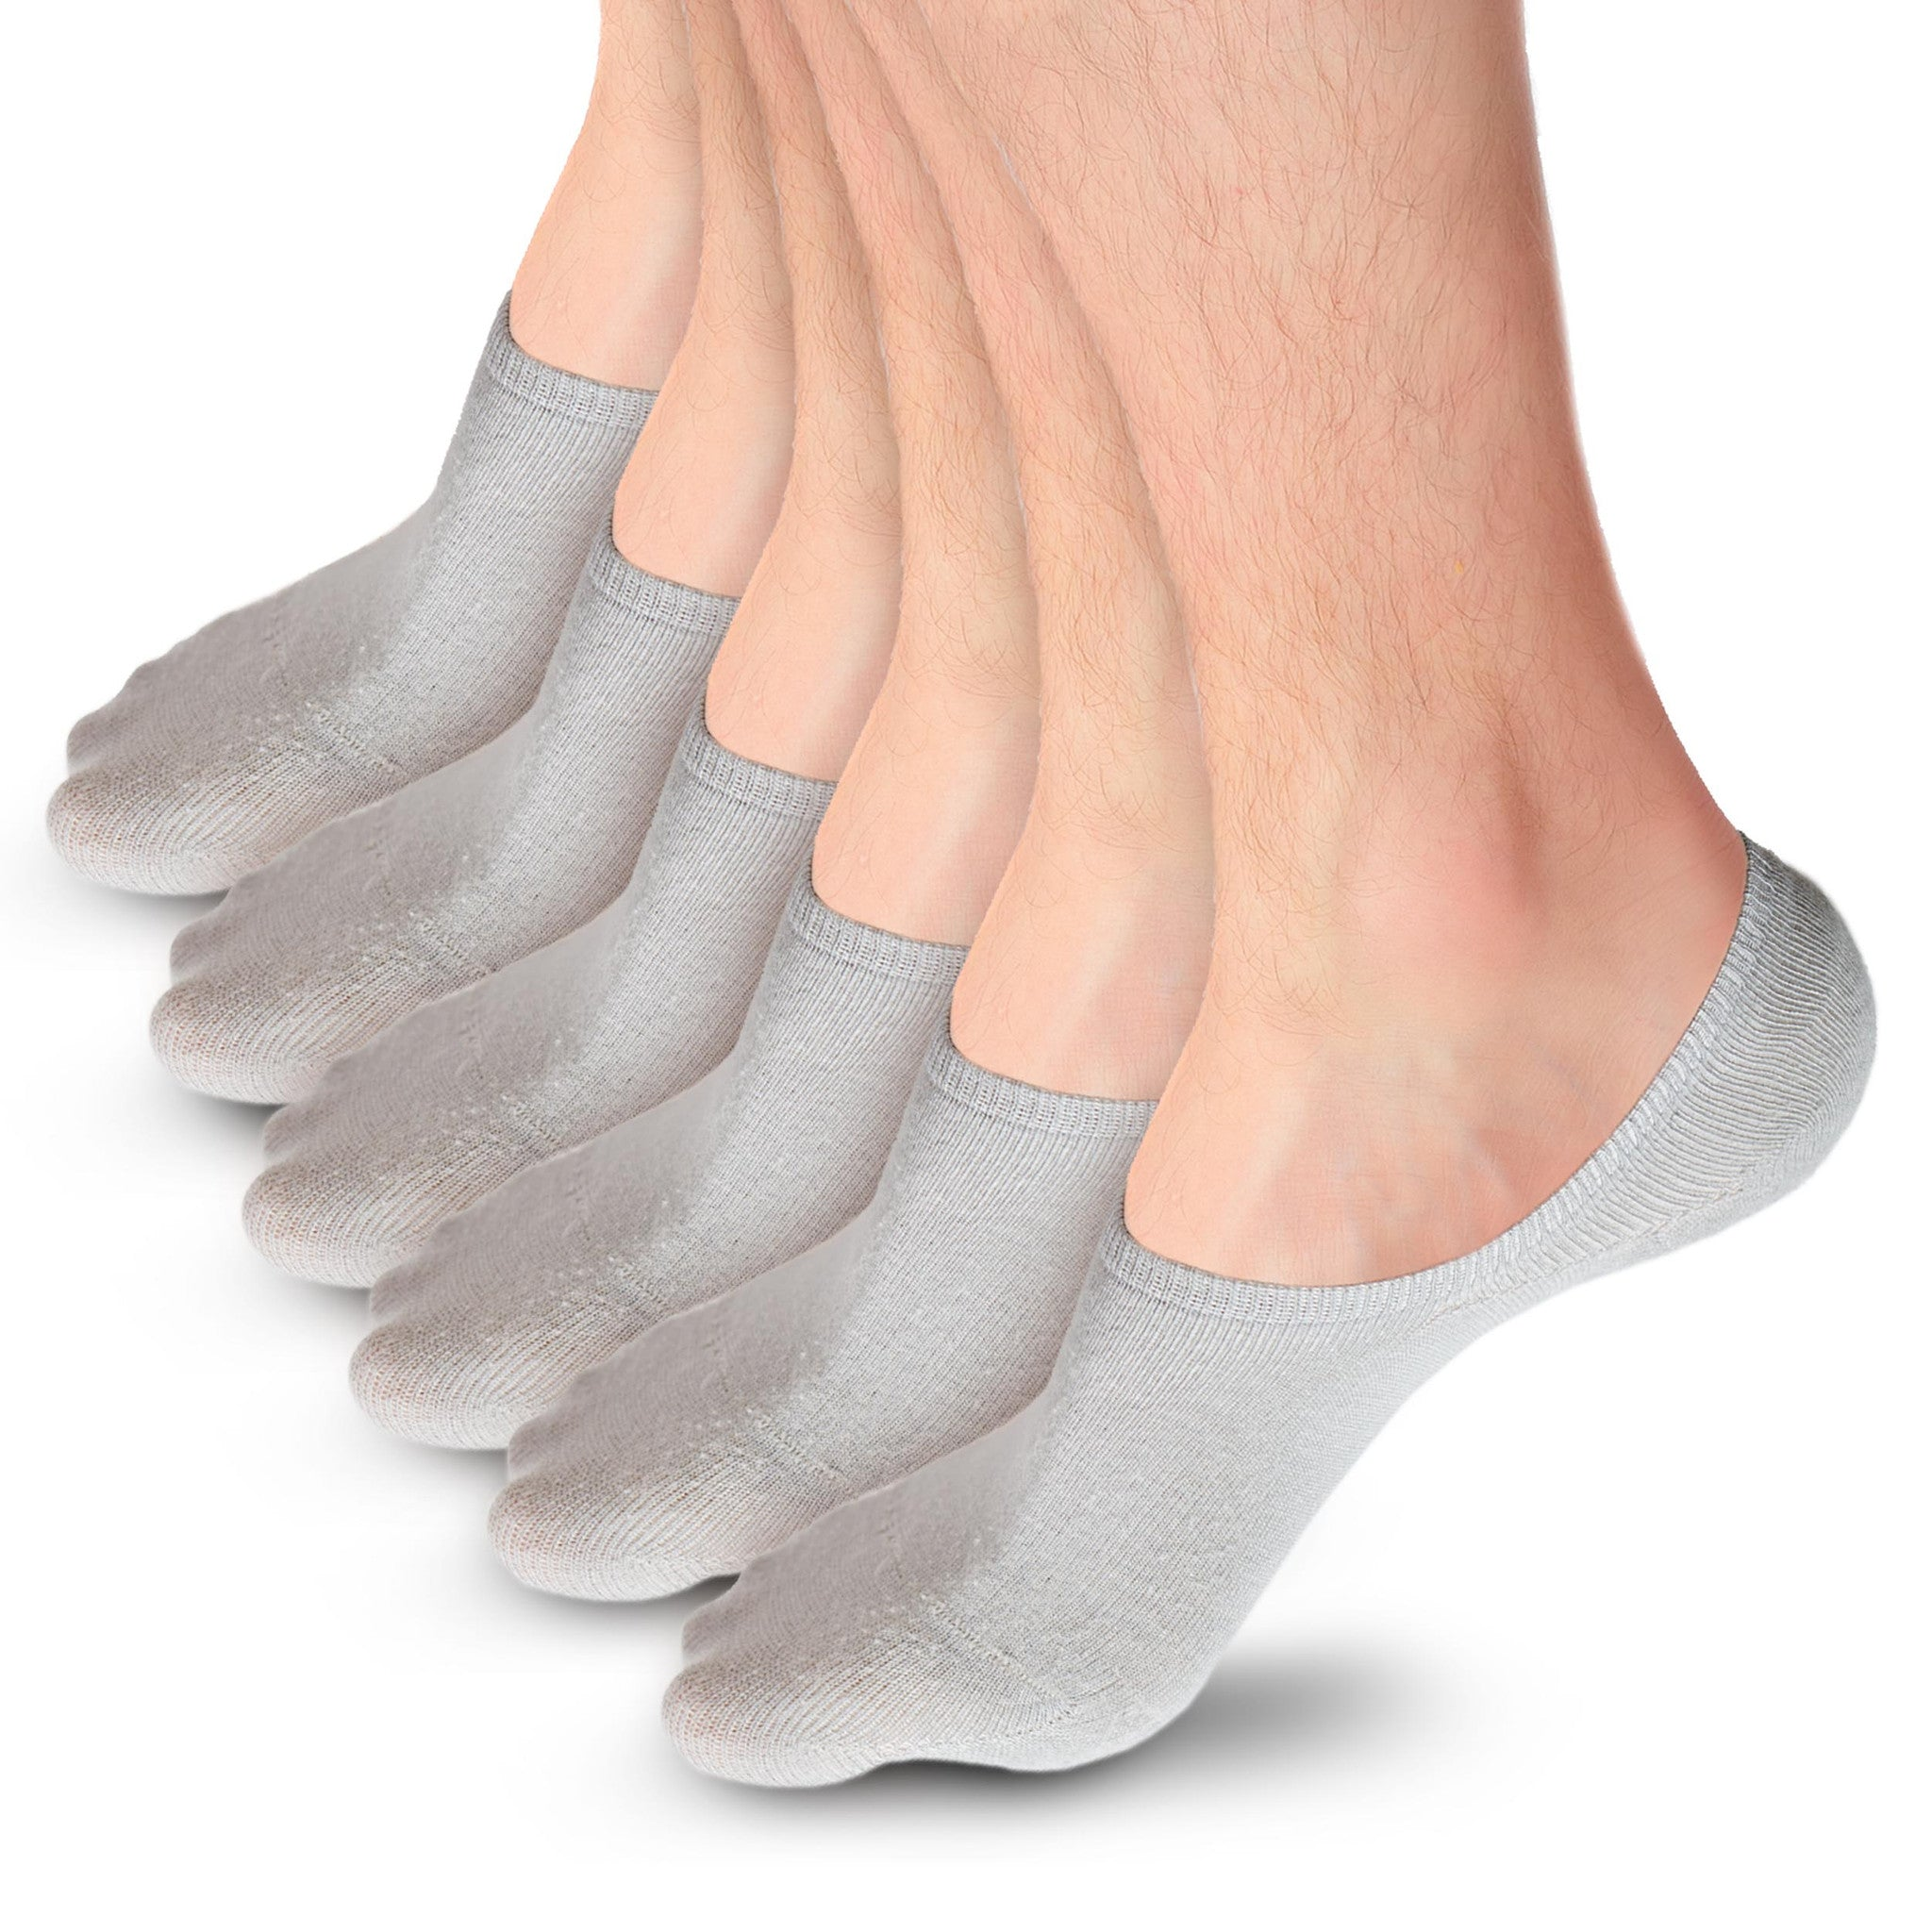 Low Cut, No Show Socks for Men, Bamboo Fiber with HeelHugTM Technology (Pack of 6)